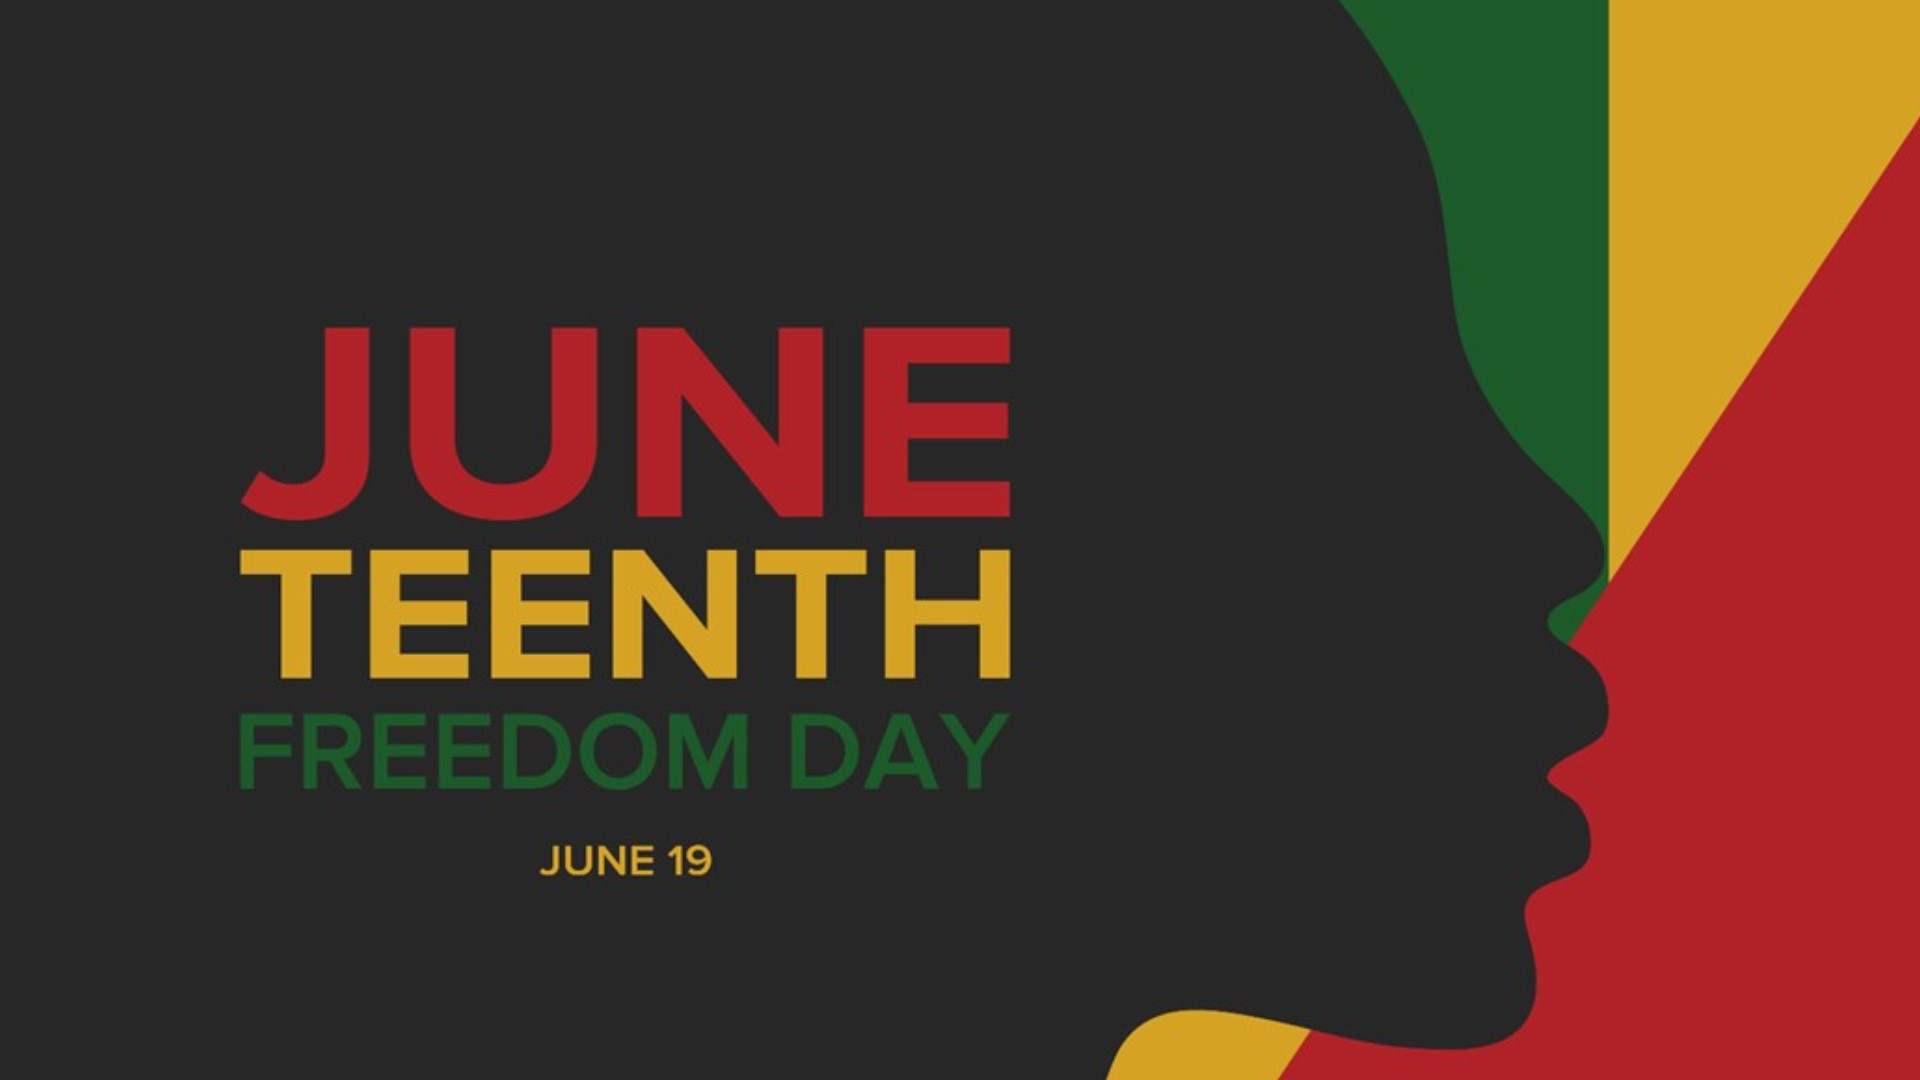 All about Juneteenth and how to celebrate!